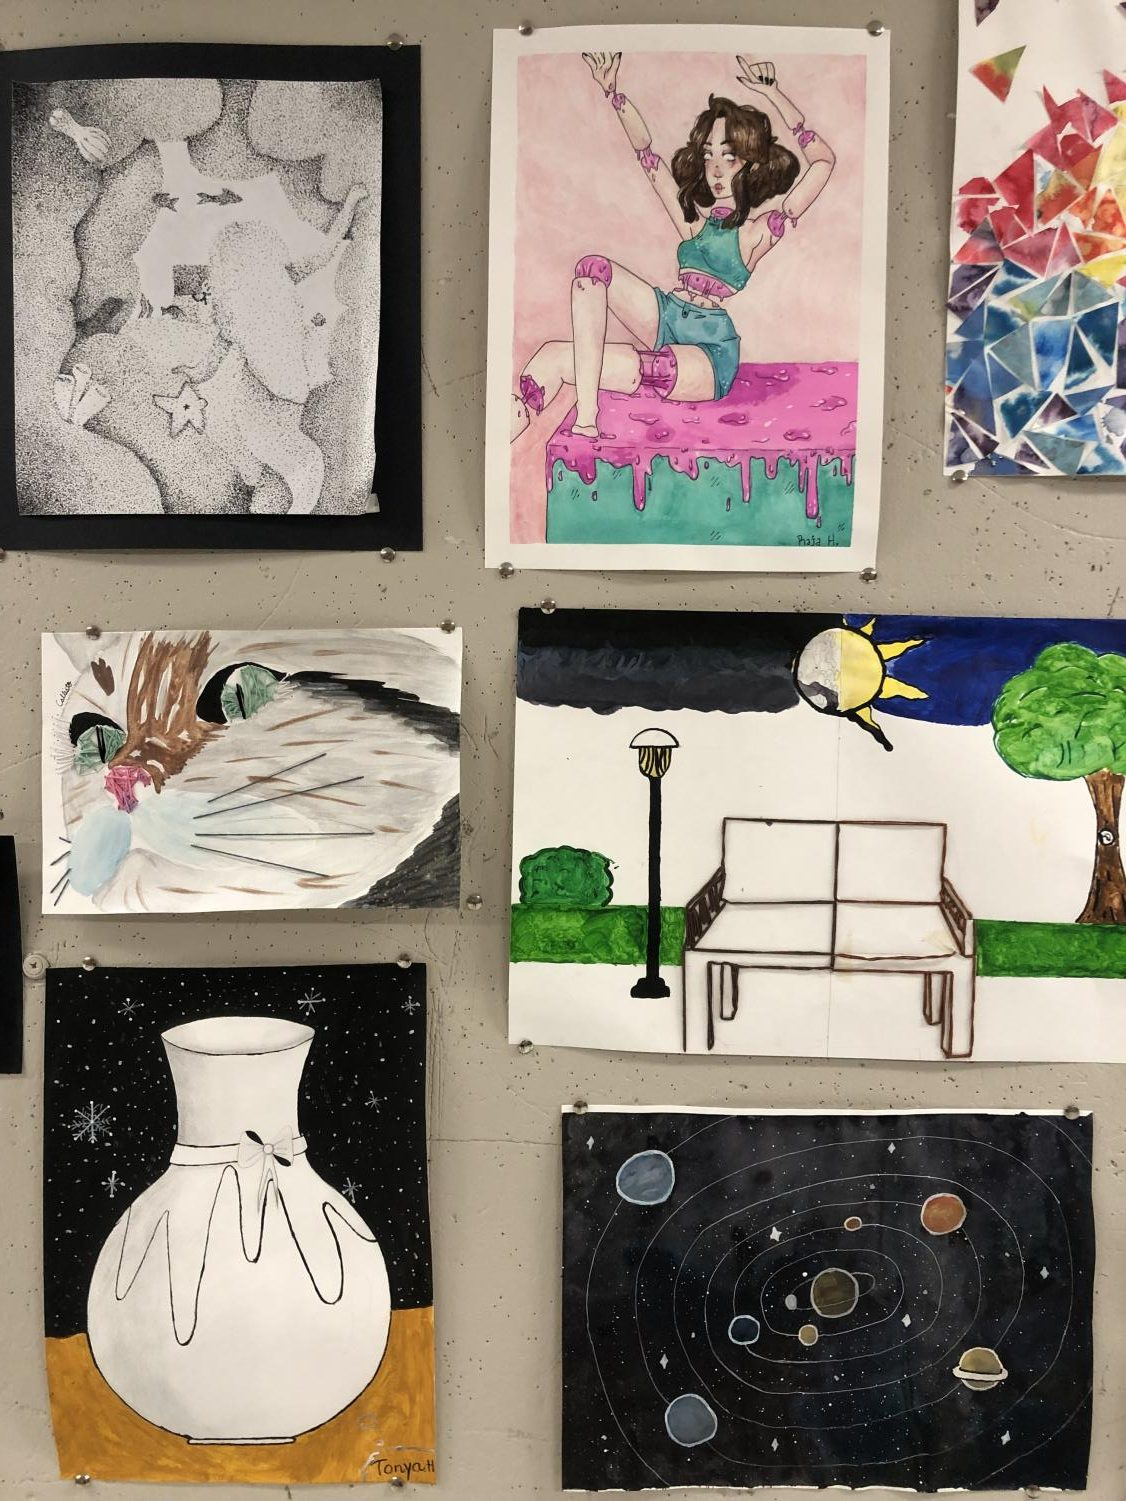 Recent student work is on display in the art room. Come check it out!